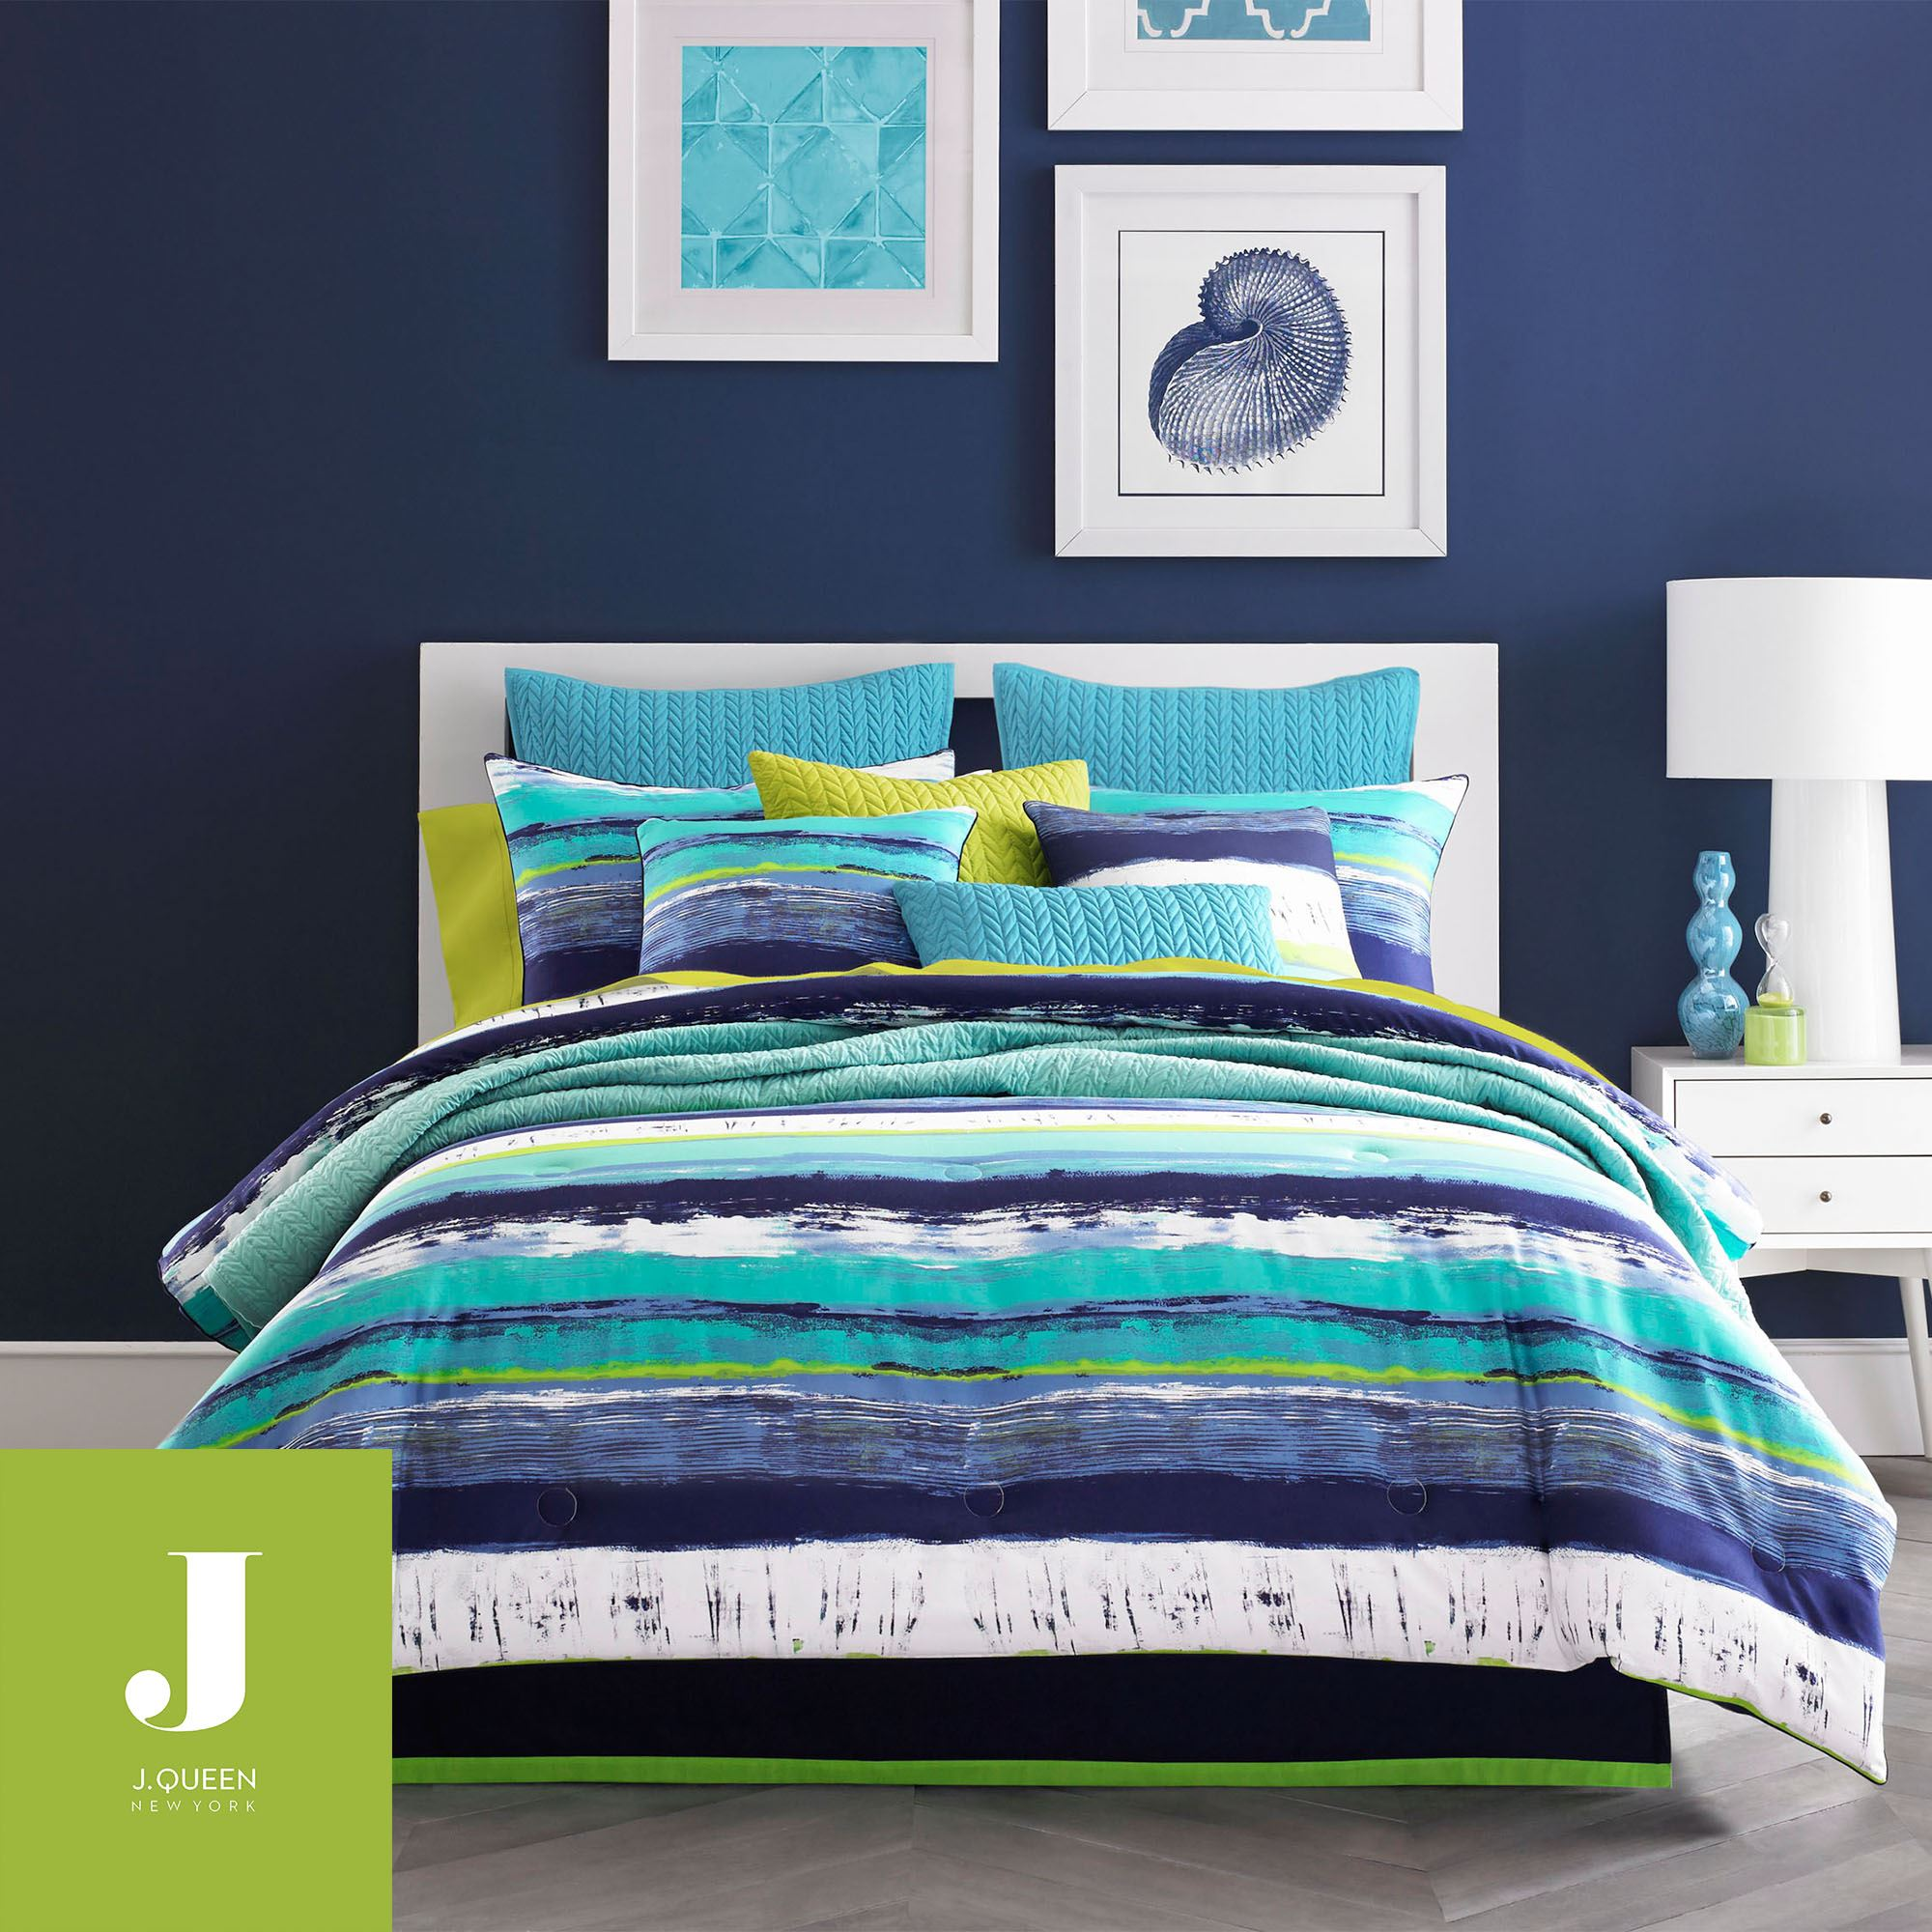 color bedding spillo other solid blue full ink tiffany plain kind colored and alluring sets twin has king peyton co of set one baby best target glamorous caves personalized rags ideas comforter duvet the remarkable xl nursery